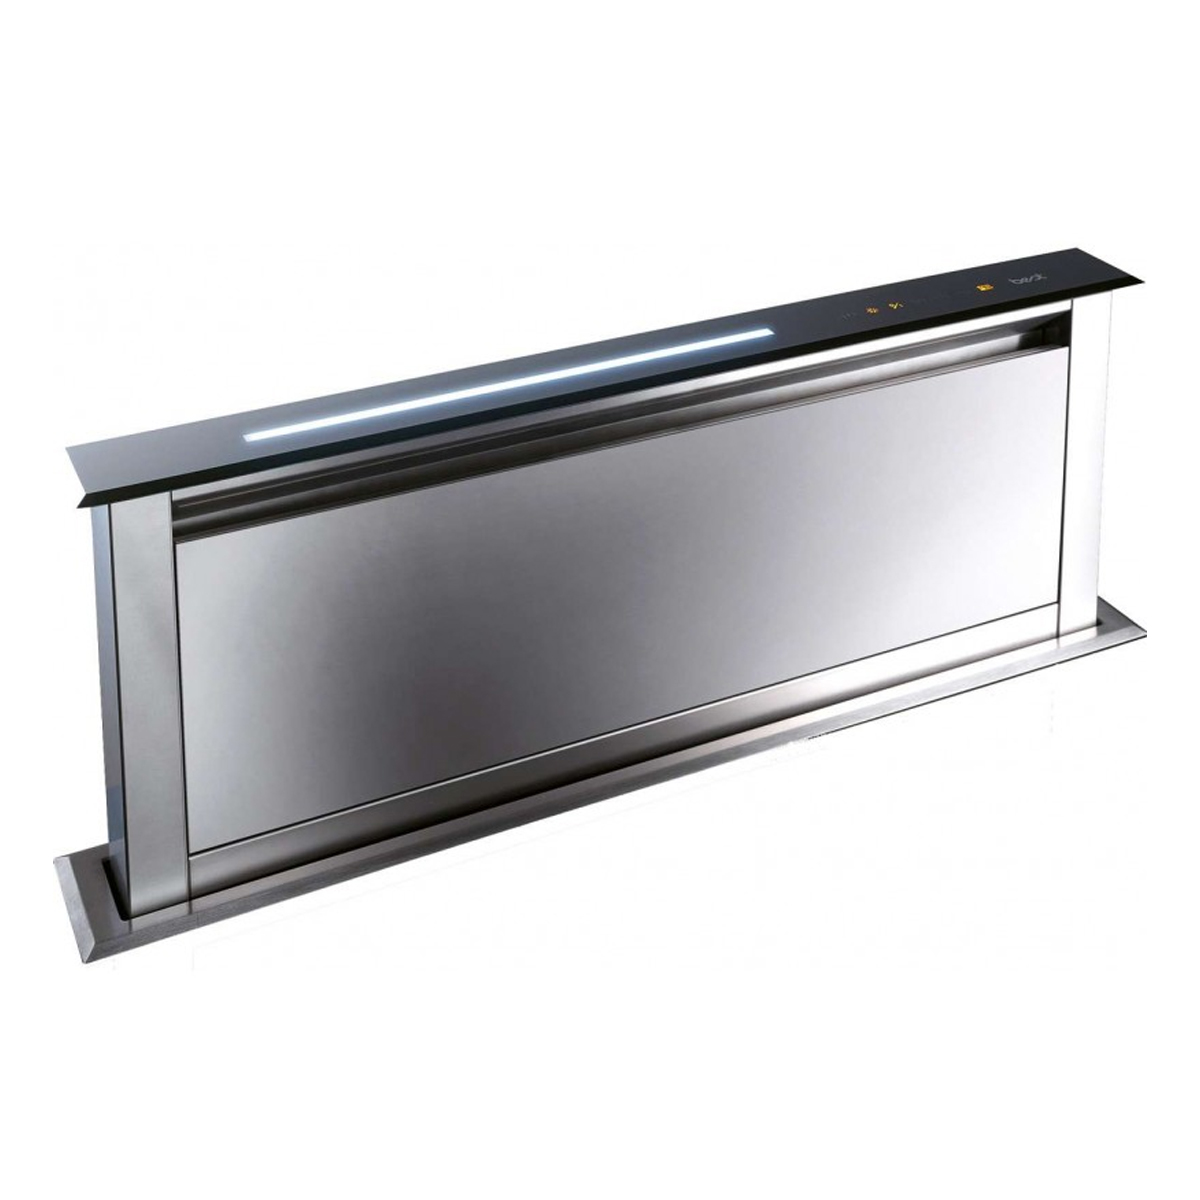 Smeg LIFTFPX900 900mm Built-in Downdraft Rangehood